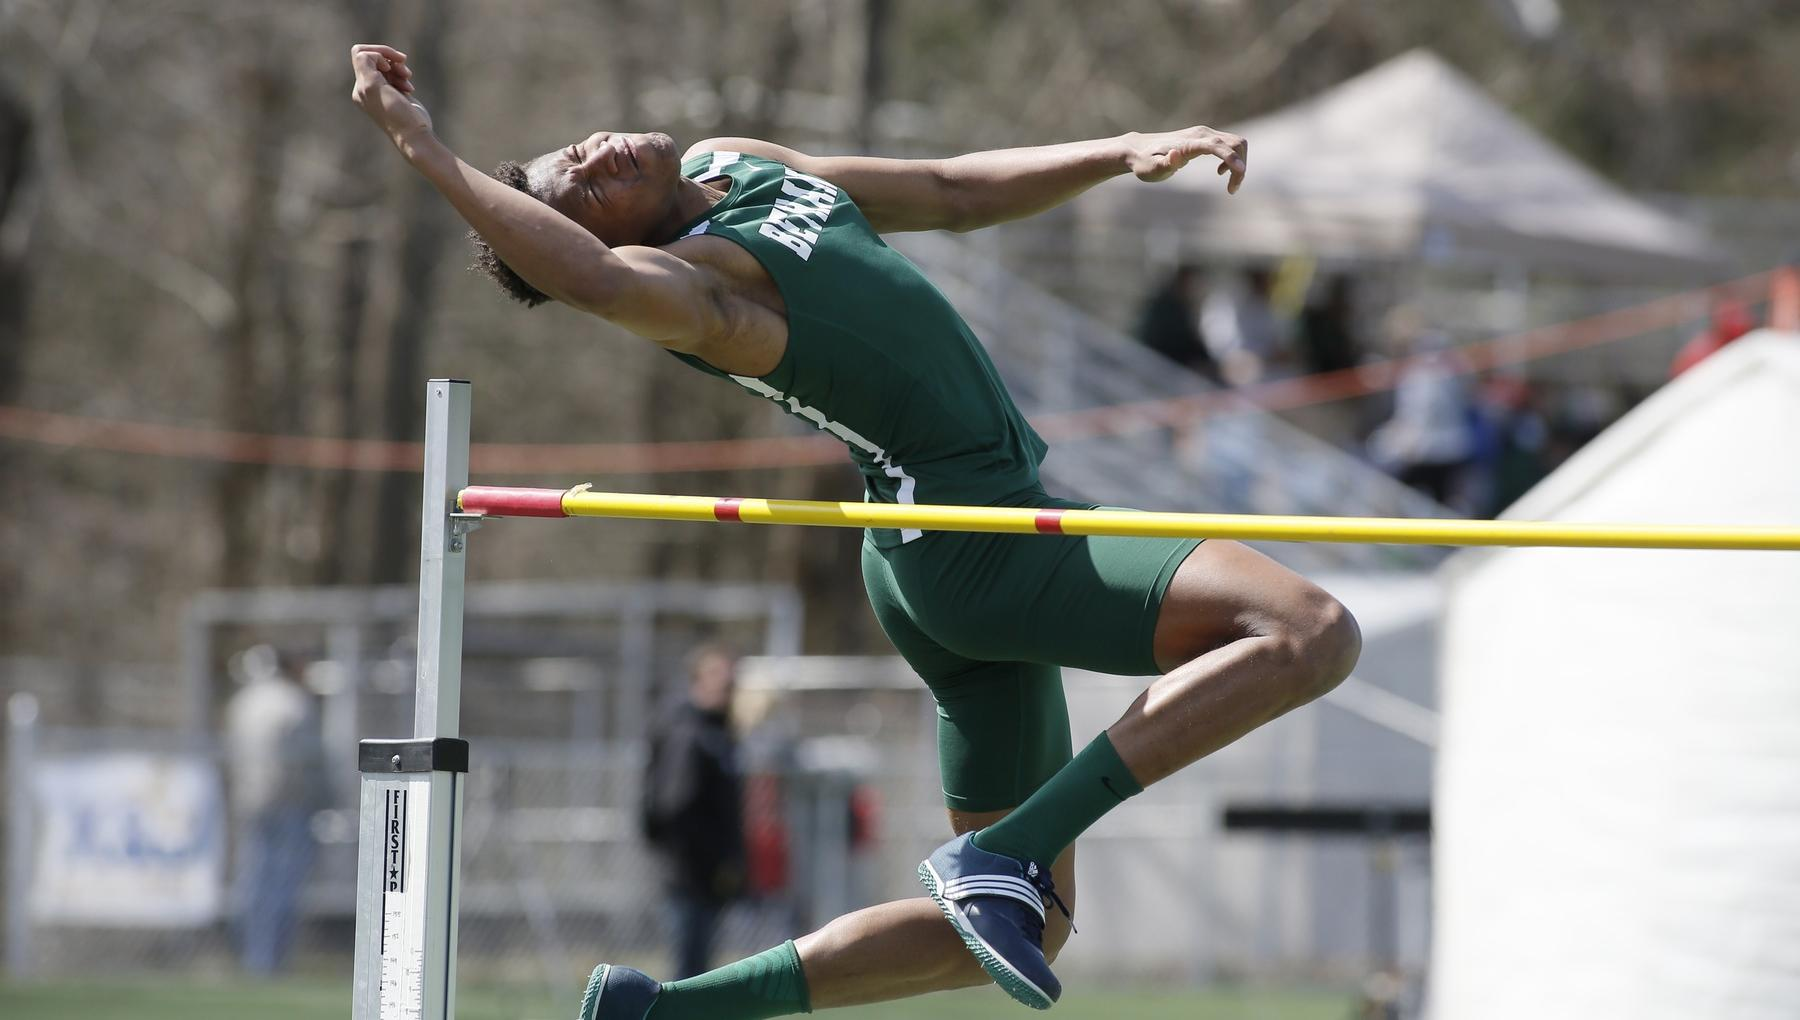 Sallah-Mohammed smashes triple jump record at Bethany Invite